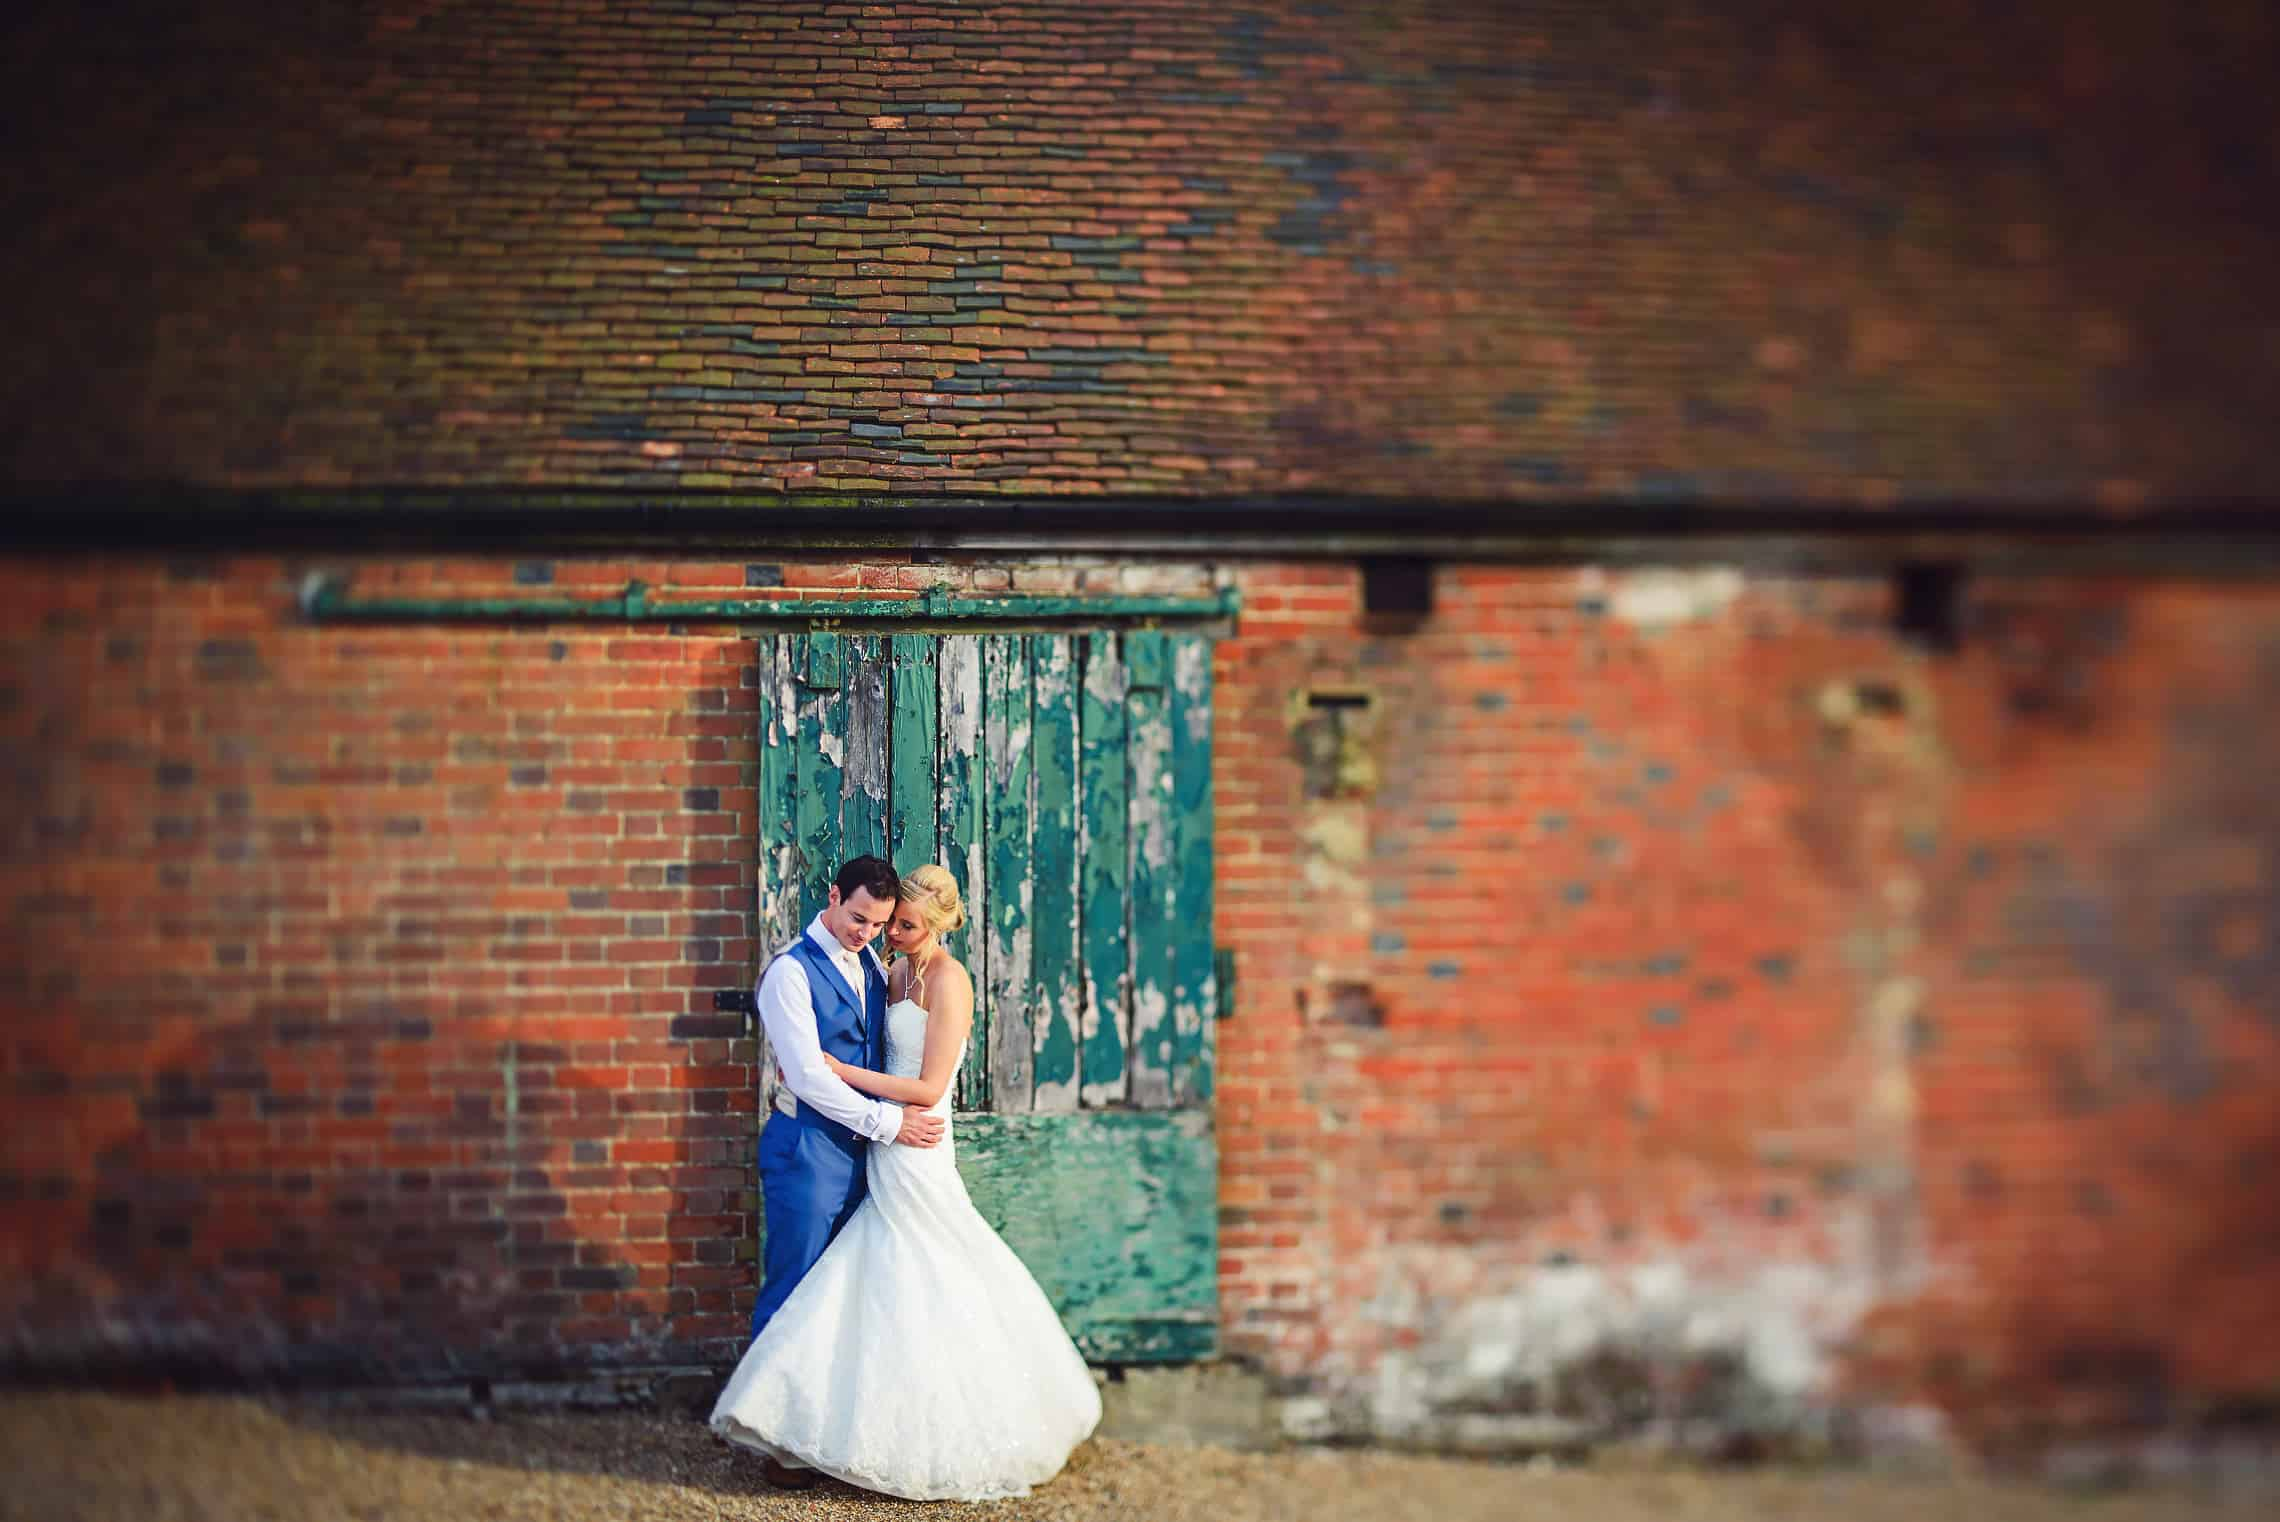 gaynes_park_wedding_lm_justin_bailey_photography_017